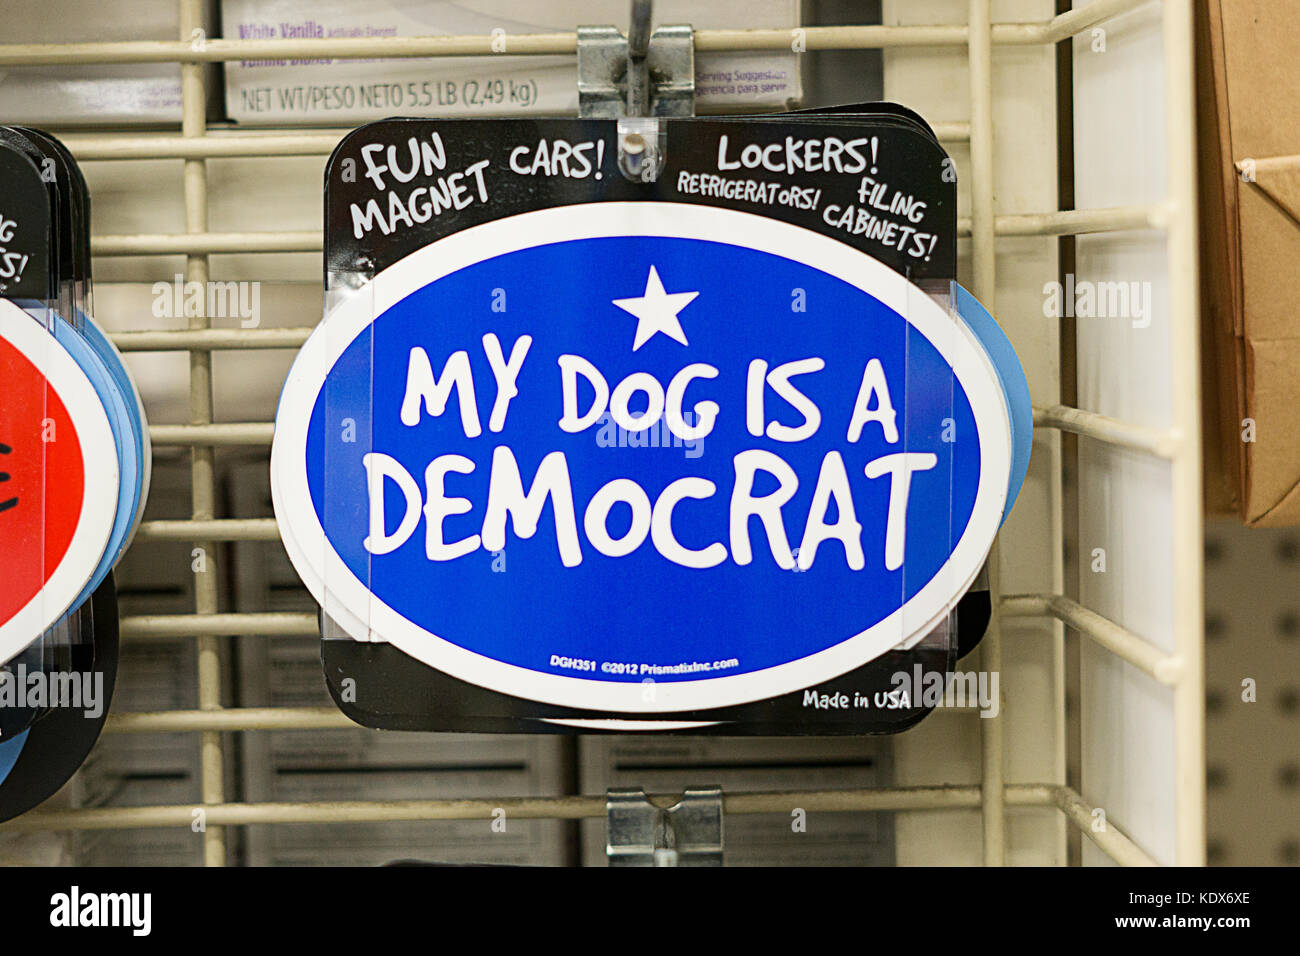 A fun magnet saying MY DOG IS A DEMOCRAT for sale at Michaels, an arts & crafts store in Westbury, Long Island, - Stock Image